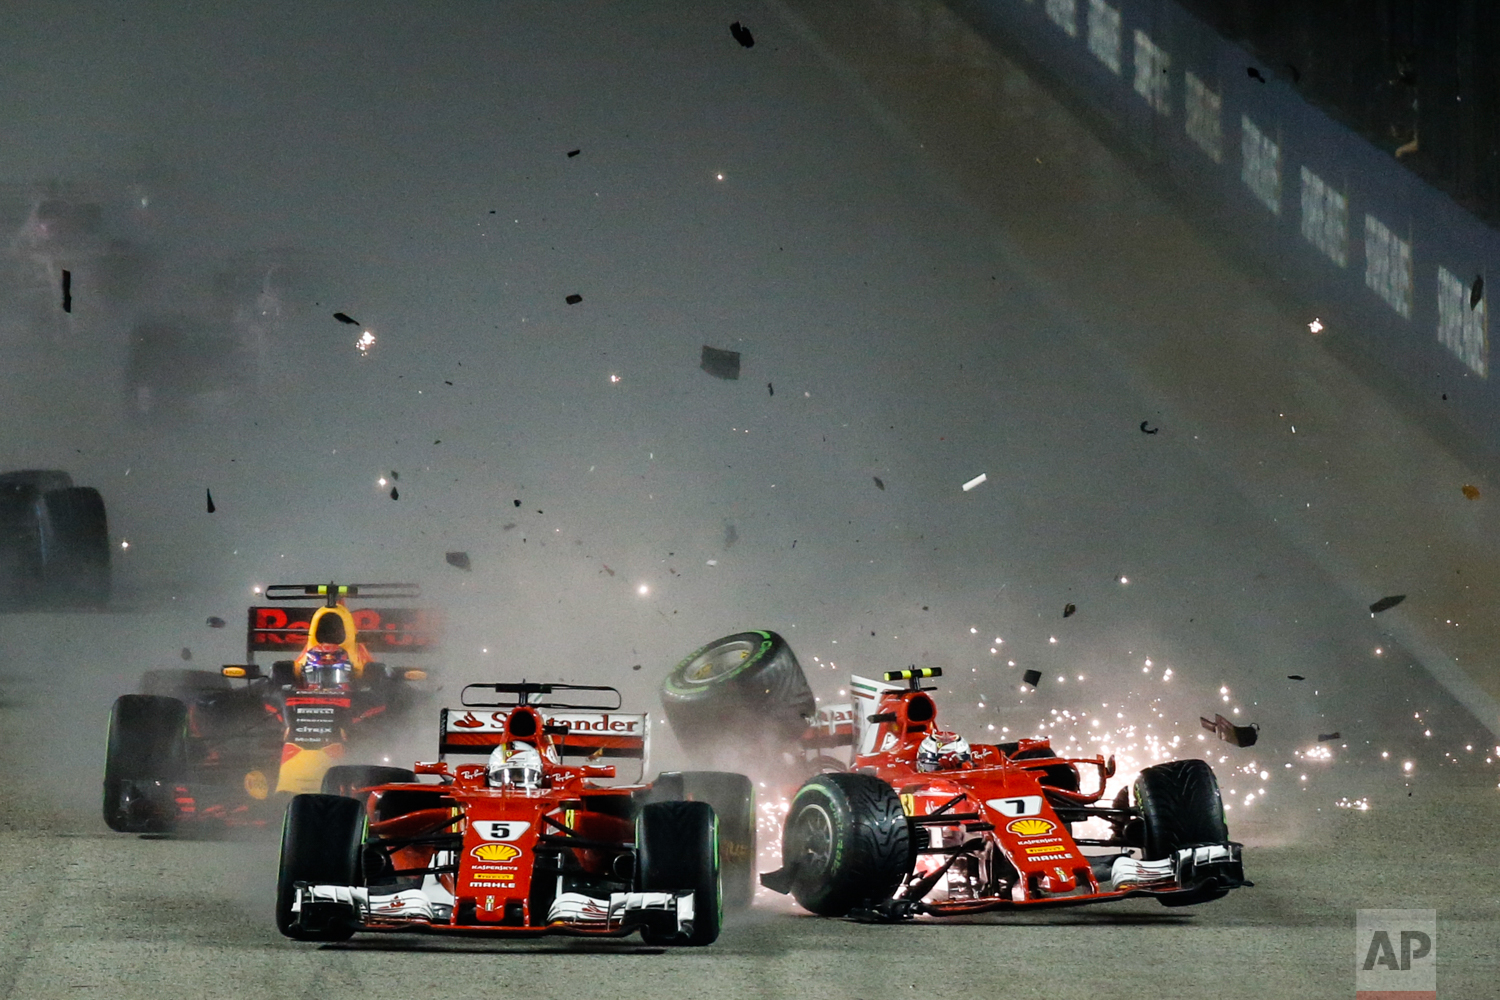 Ferrari driver Kimi Raikkonen, right, of Finland collides with teammate Sebastian Vettel of Germany at the start of the Singapore Formula One Grand Prix on the Marina Bay City Circuit Singapore, Sunday, Sept. 17, 2017. (AP Photo/Yong Teck Lim)